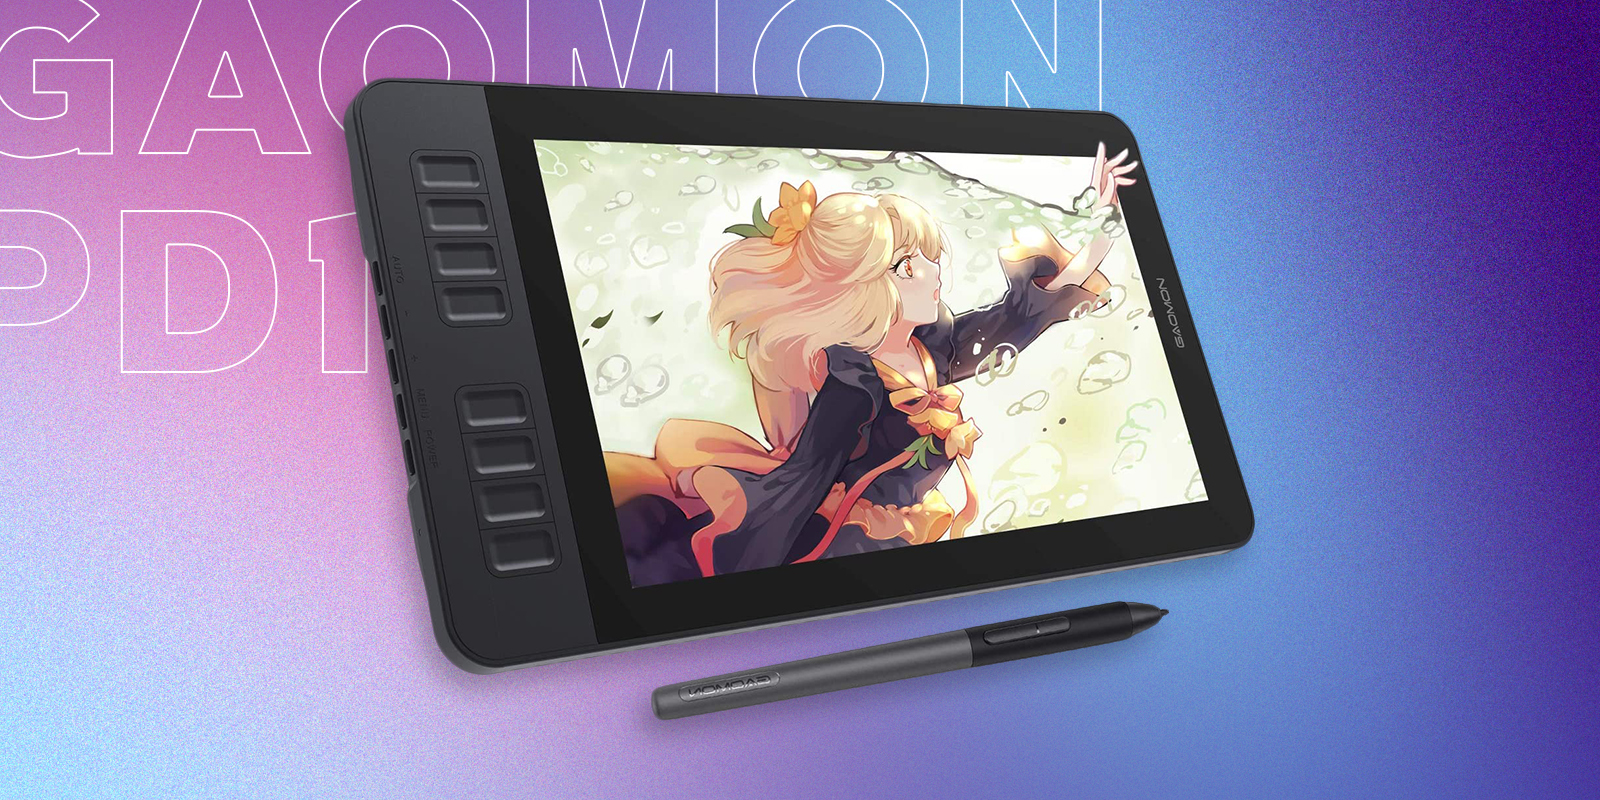 Gaomon PD1161 Best Drawing Tablet Under 300